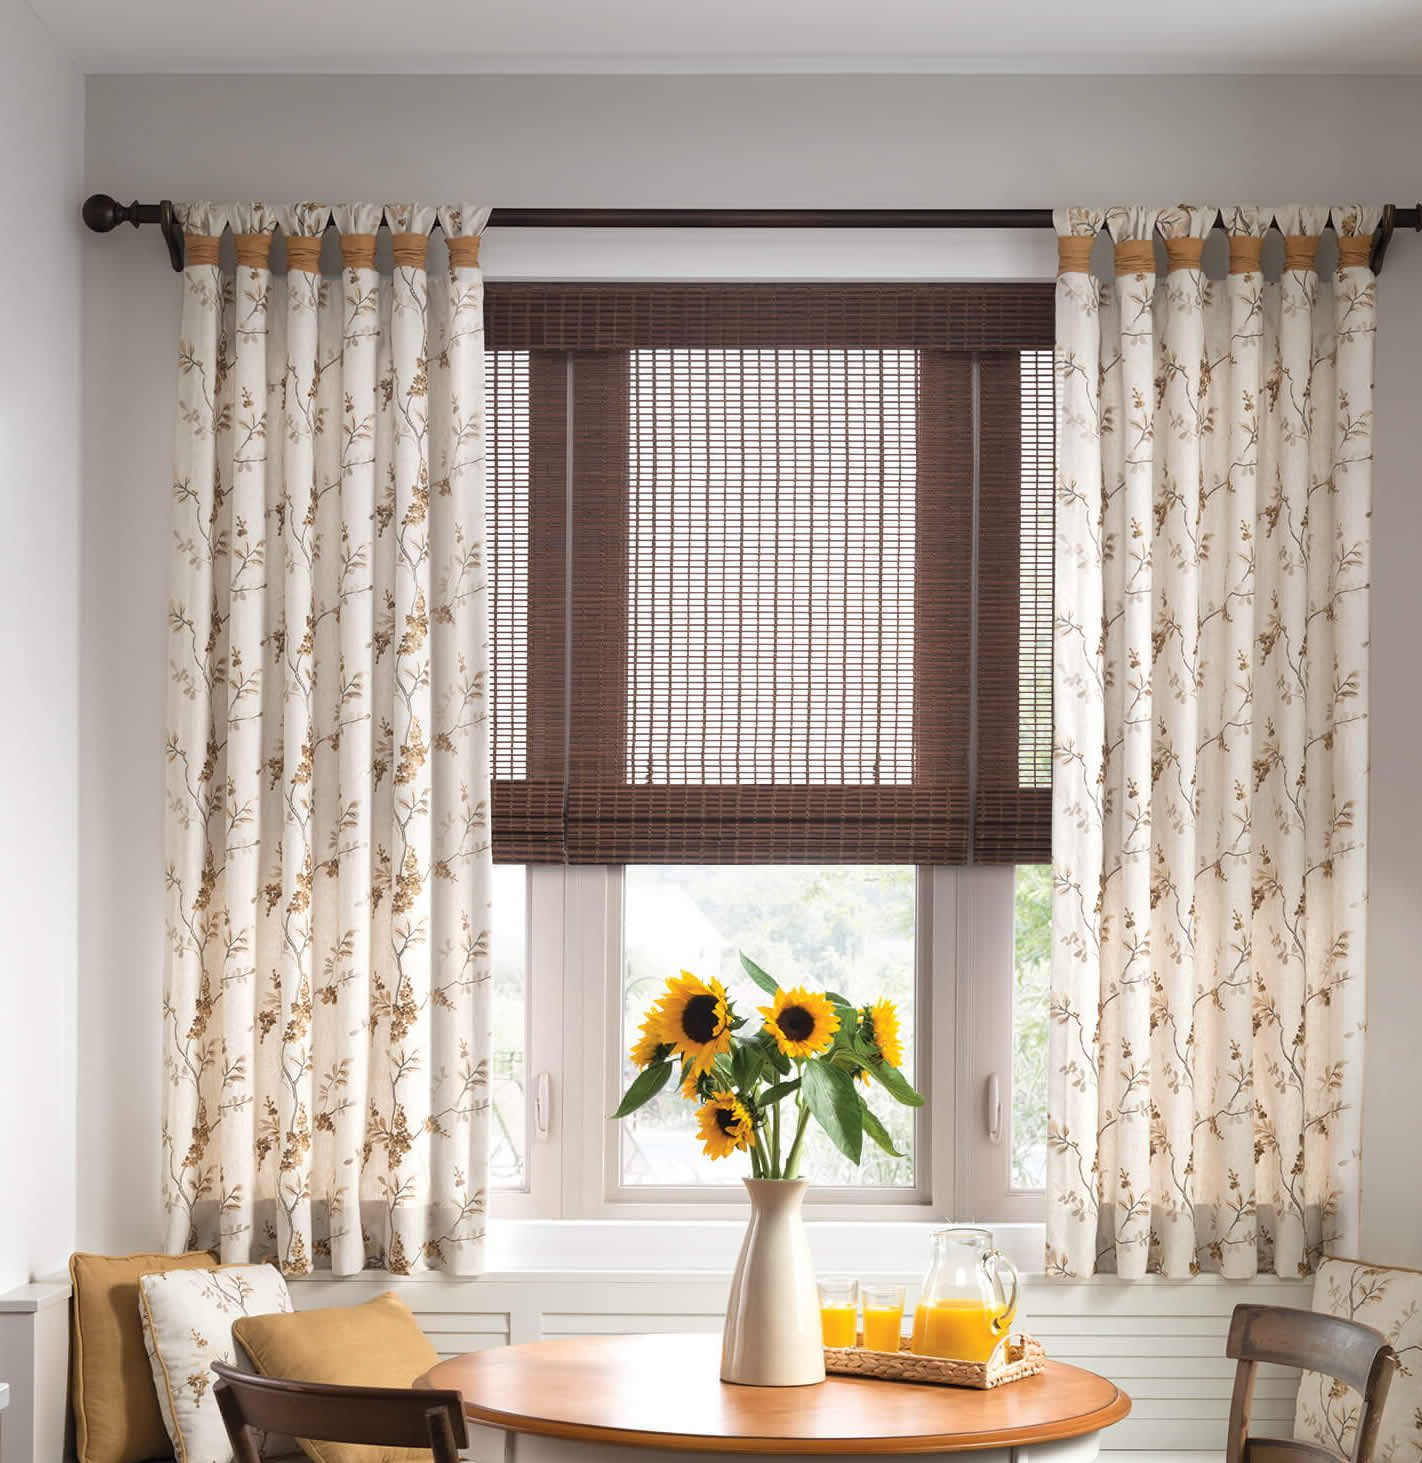 Roman shades and Drapes